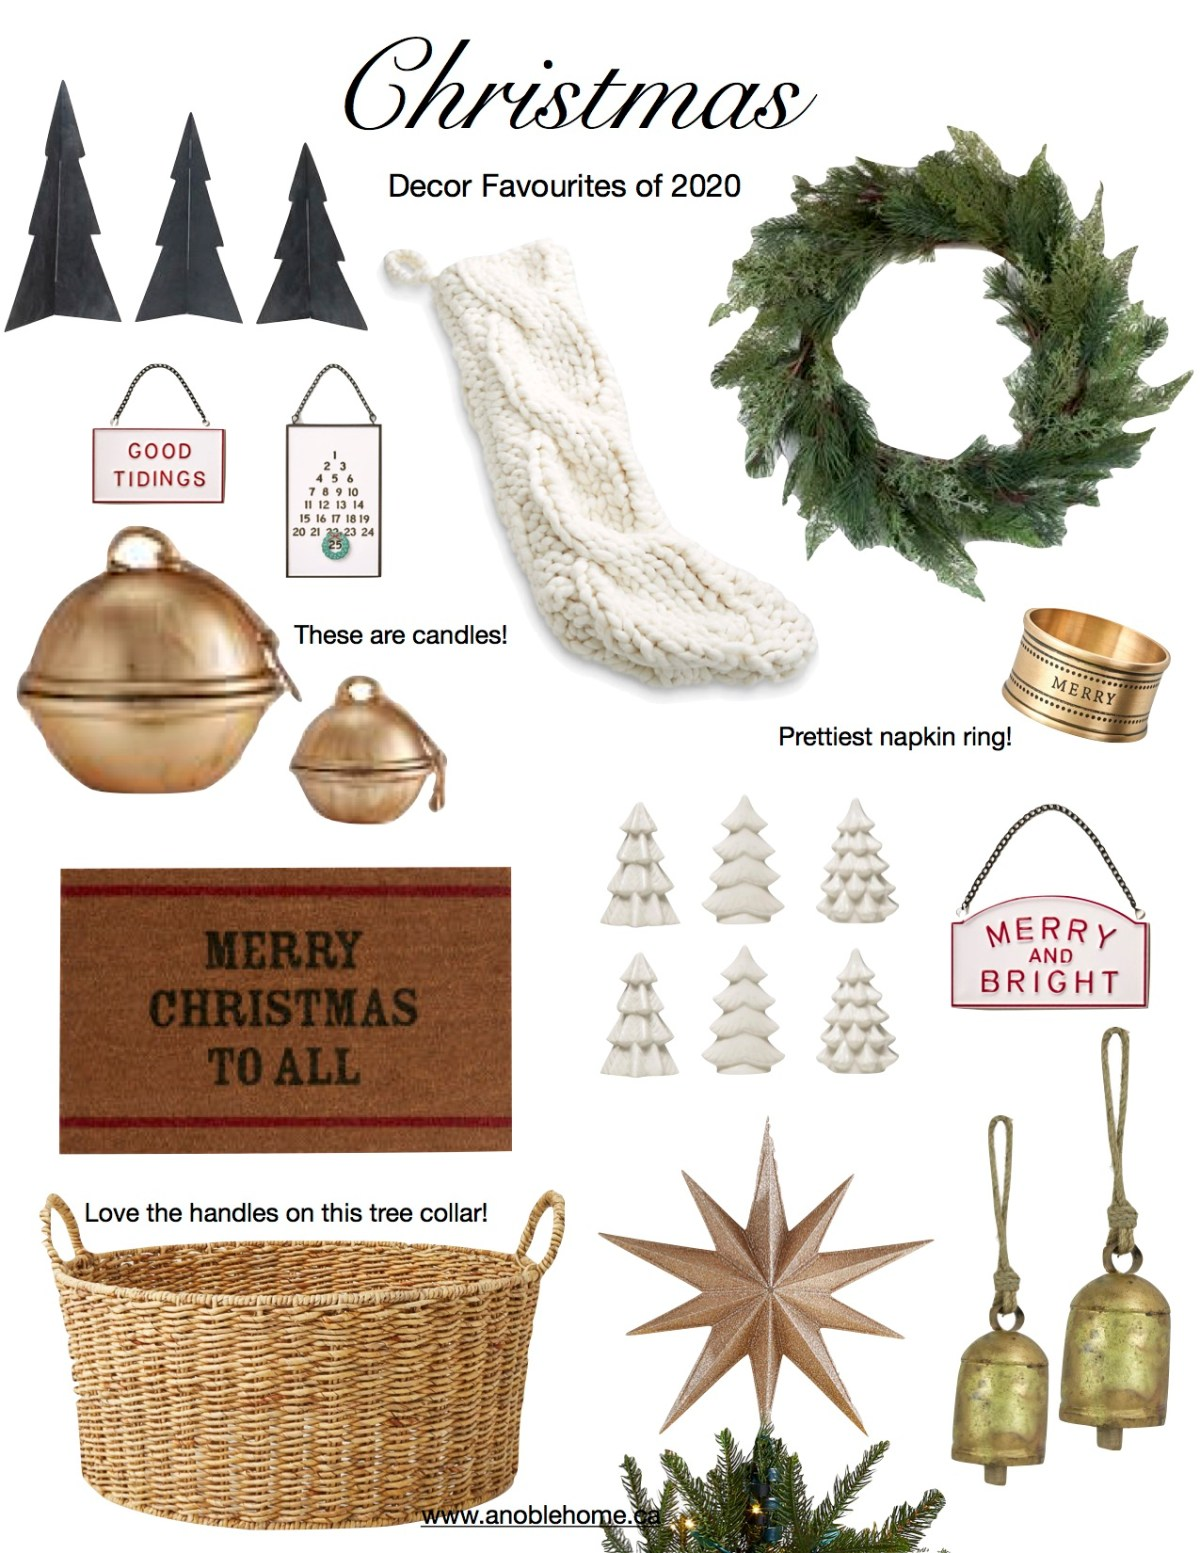 Deck the Halls … Christmas Decor Favourites of 2020